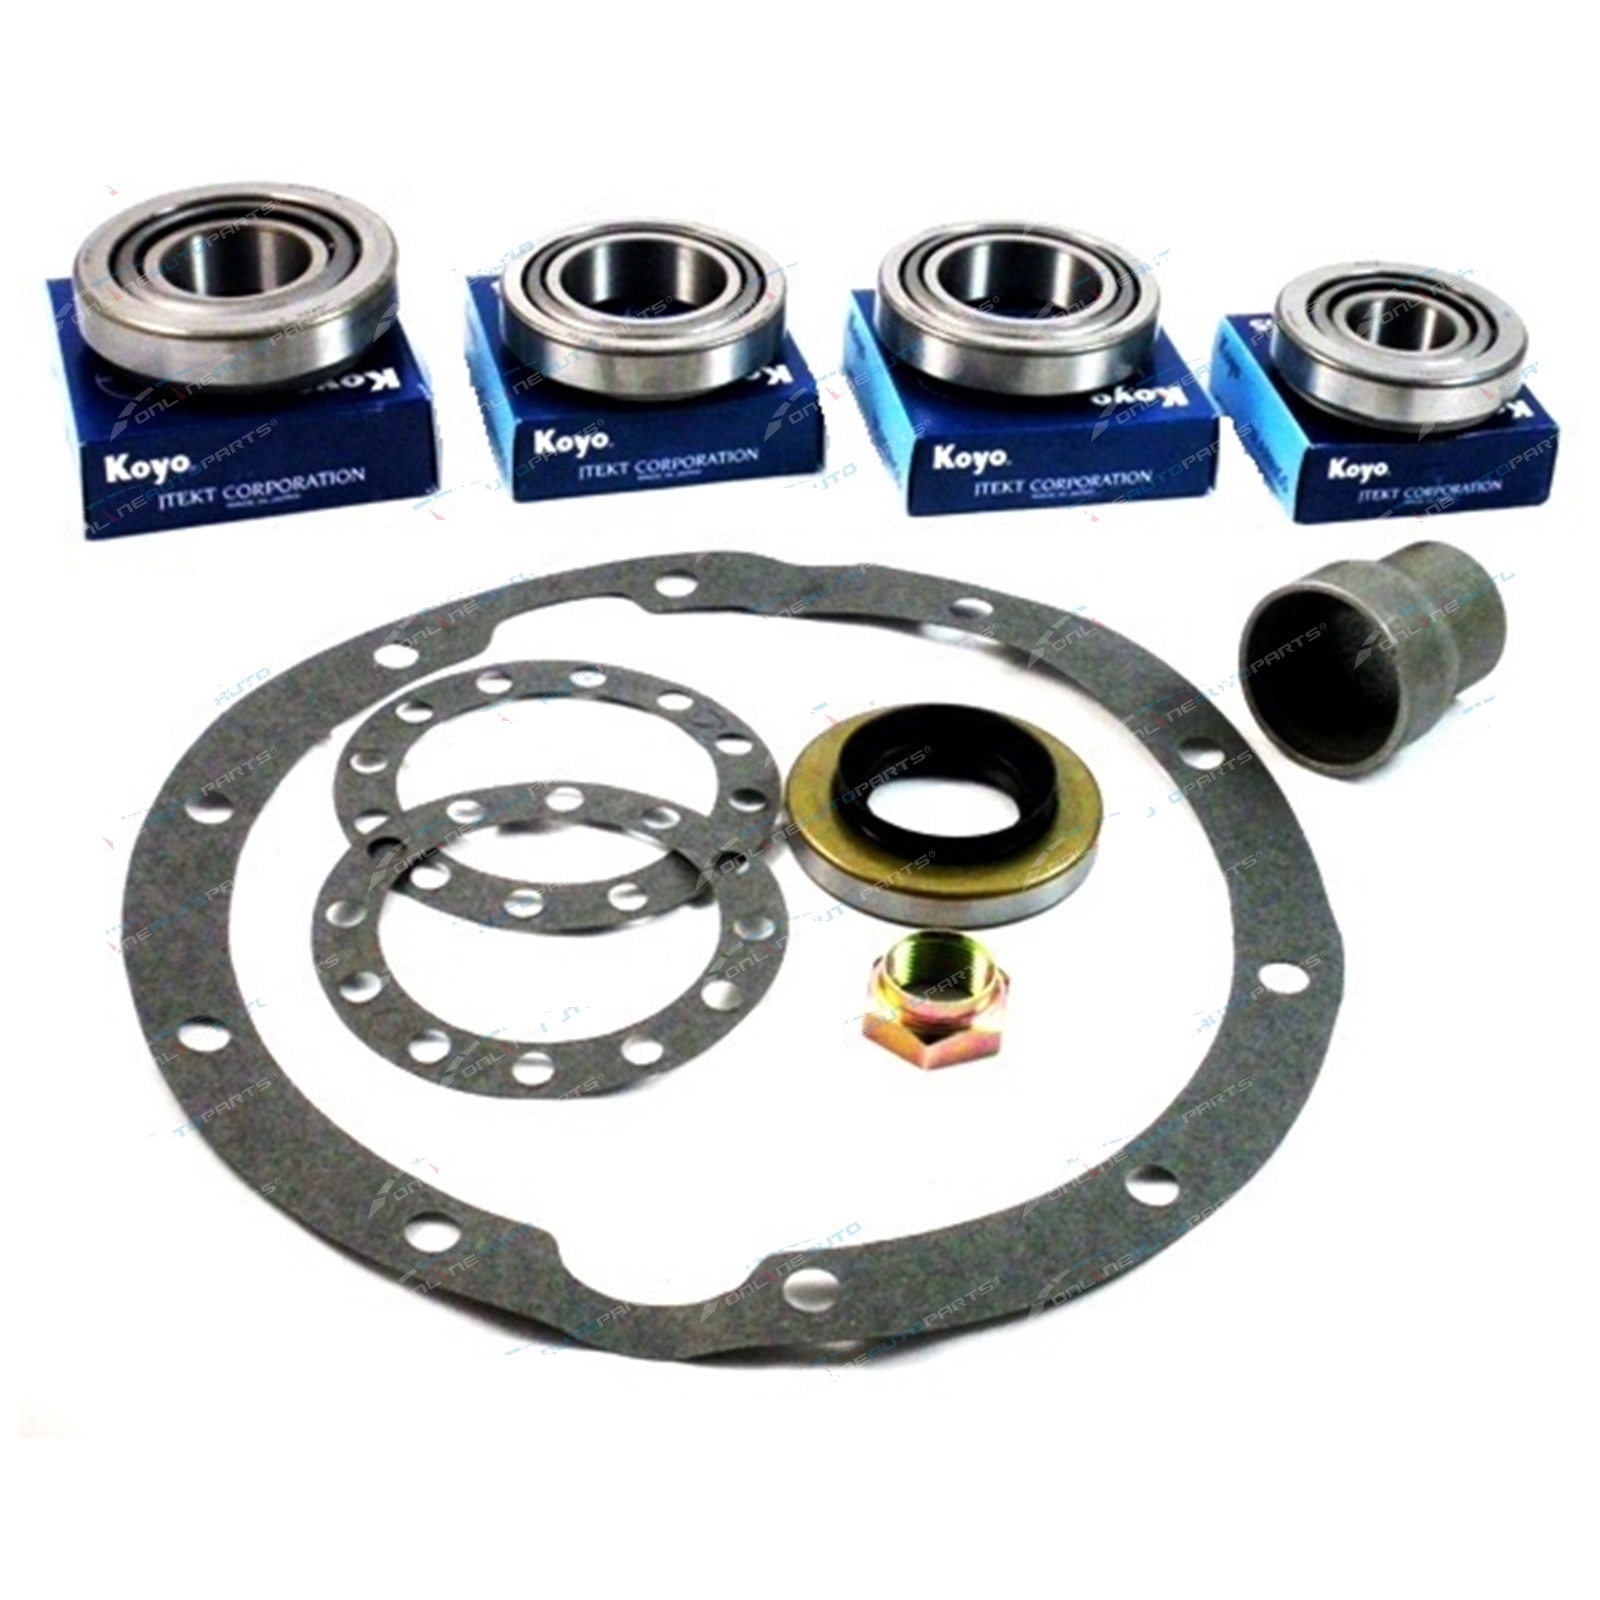 Diff Repair Kit (Rear) OEM Replacement